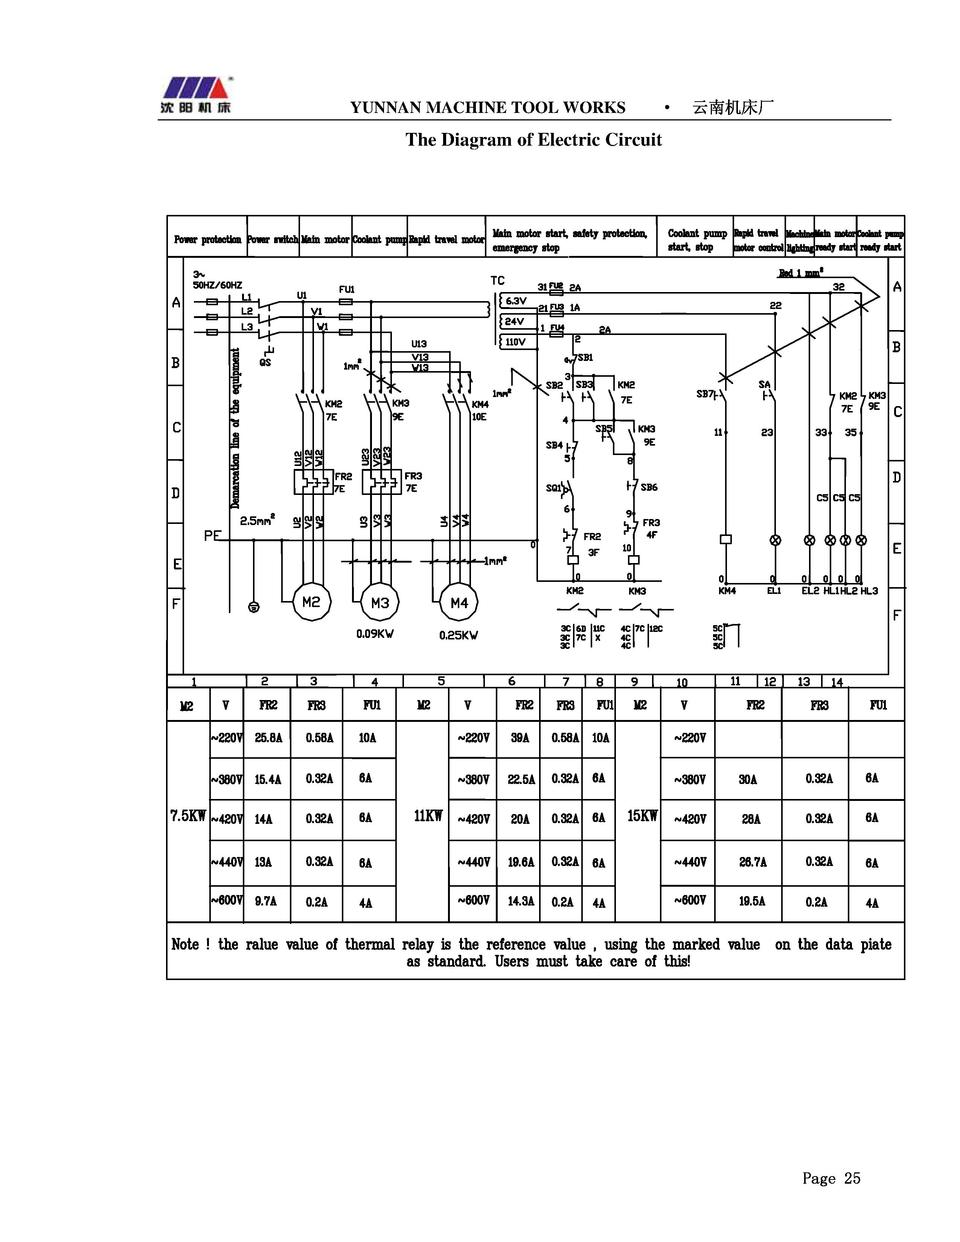 YUNNAN MACHINE TOOL WORKS The Diagram of Electric ...